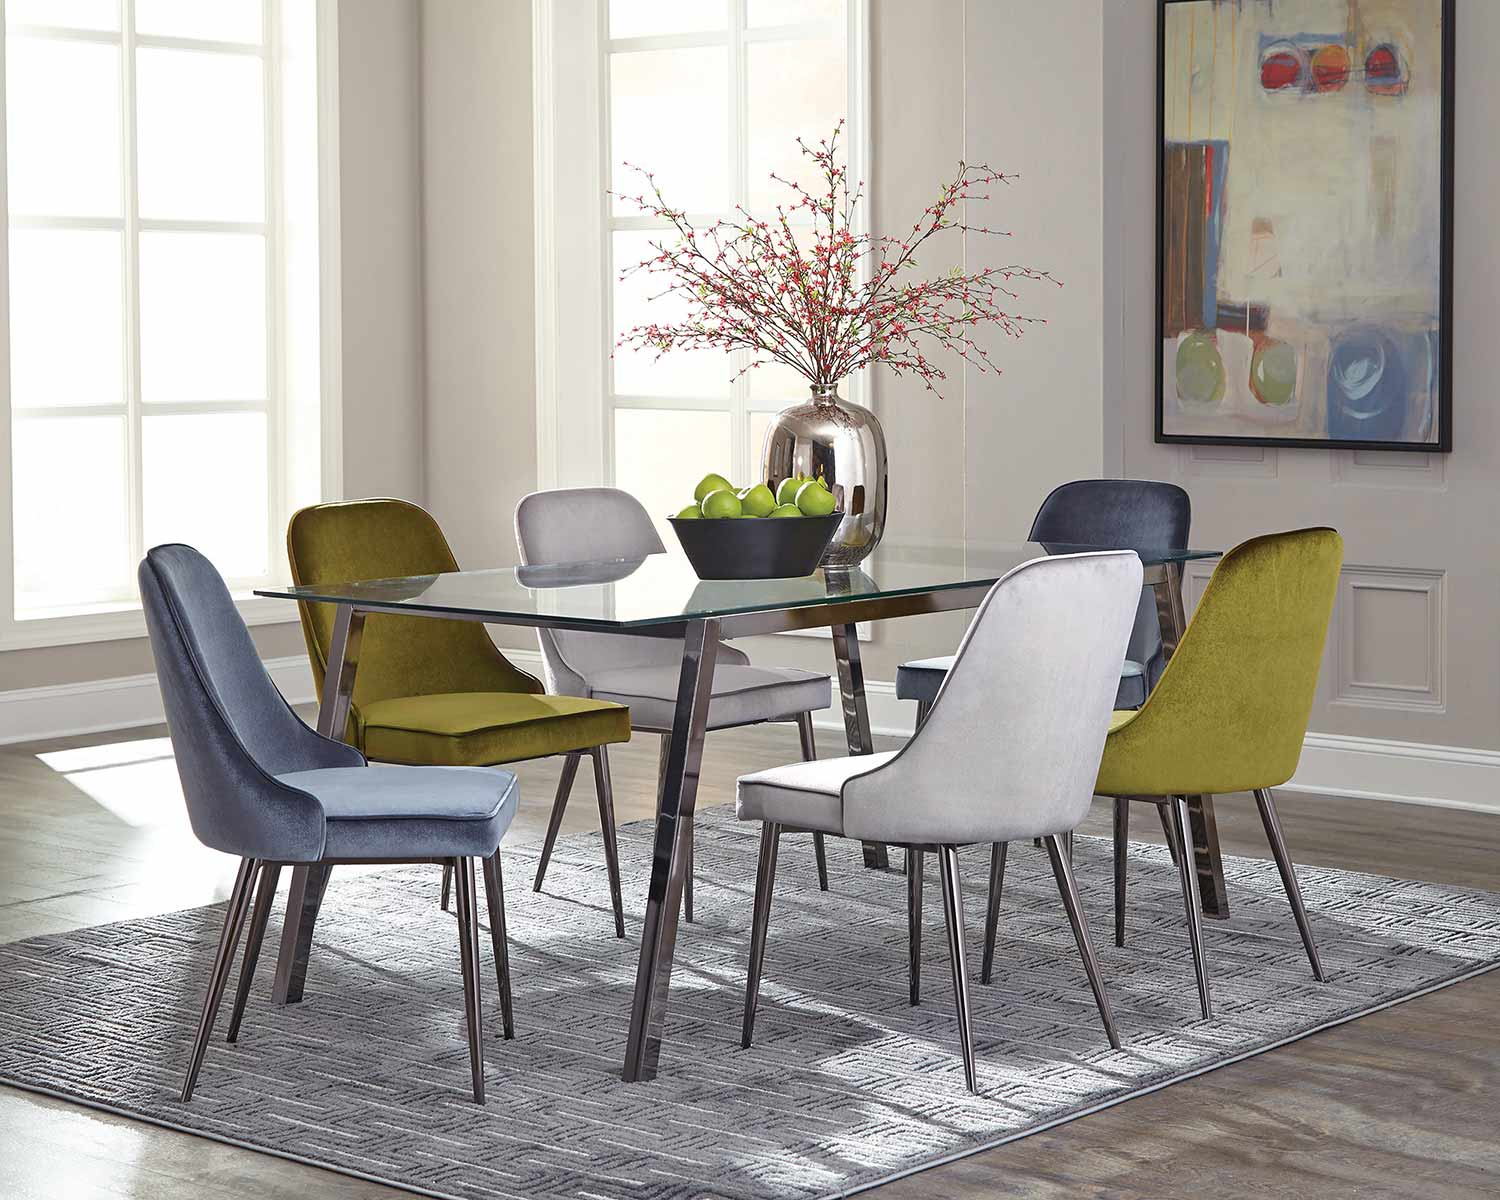 Coaster Inslee Dining Set - Black Nickel/Green/Blue/Grey